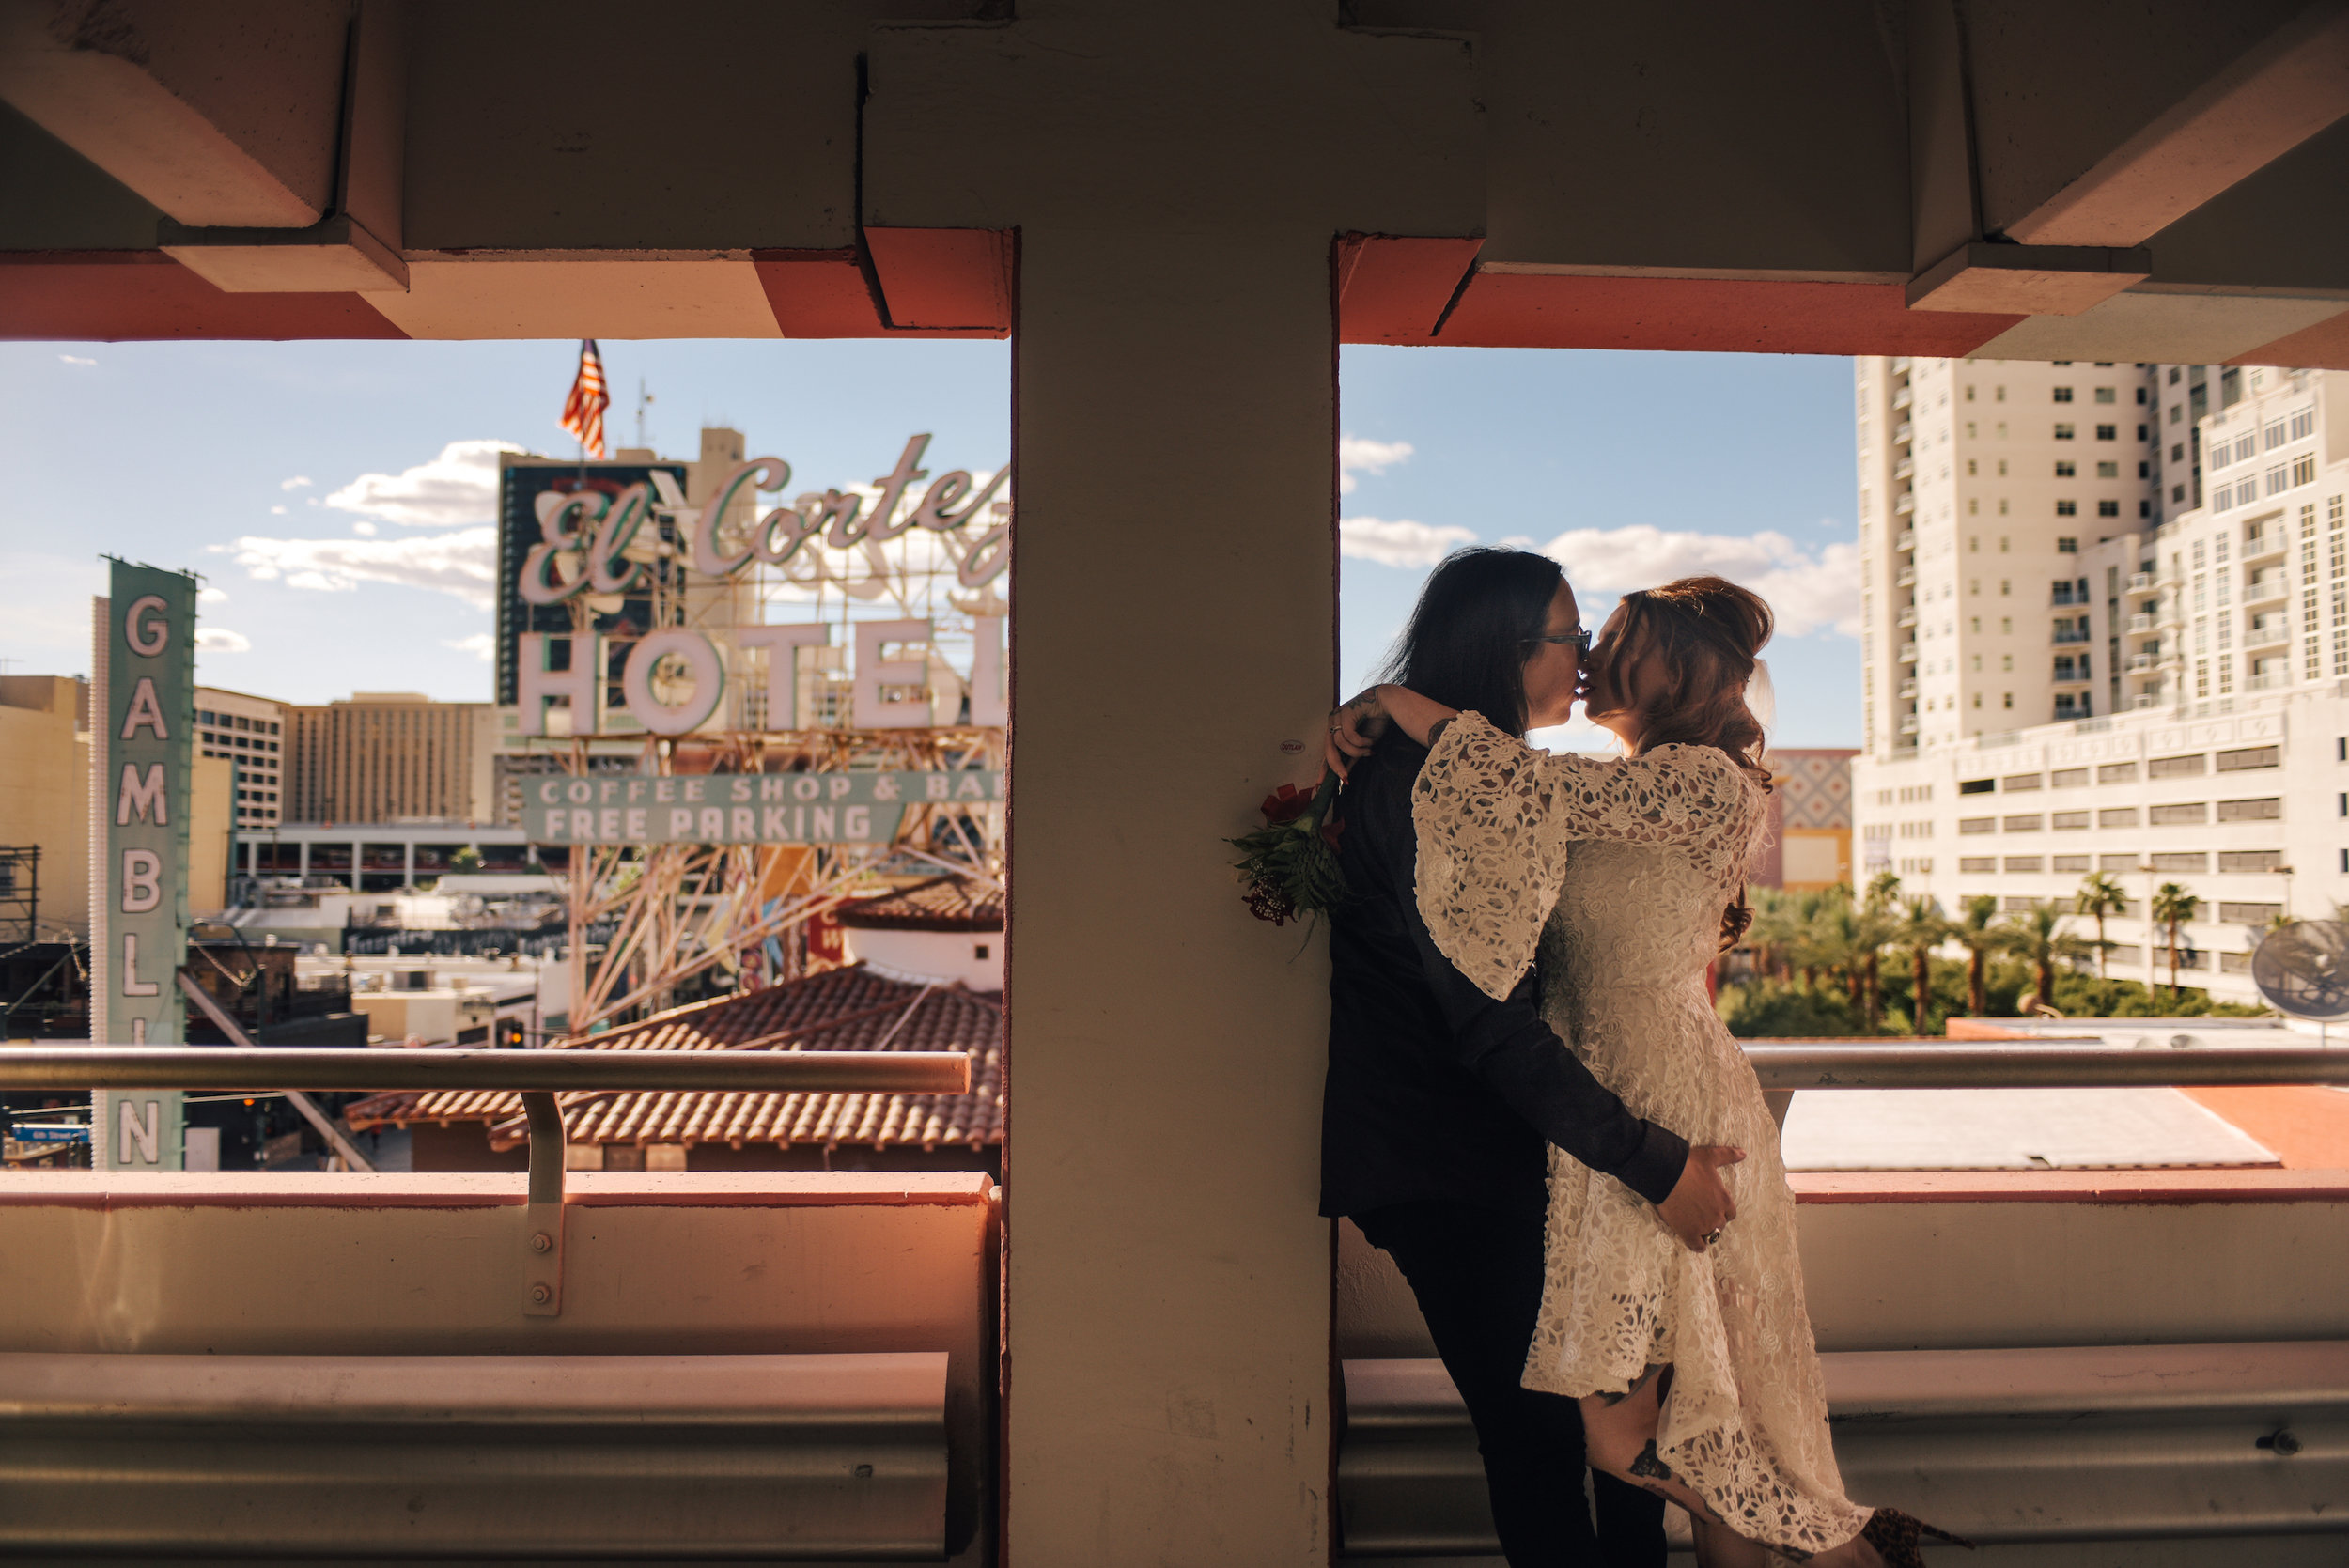 peggy sue winters, peggy sue winters elope, las vegas elopement, elopements, las vegas wedding, downtown wedding, suicide girls, tattoos, girl with tattoos, wedding, downtown wedding, las vegas wedding downtown, elvis wedding, las vegas elopement photographer, lifestyle photography,